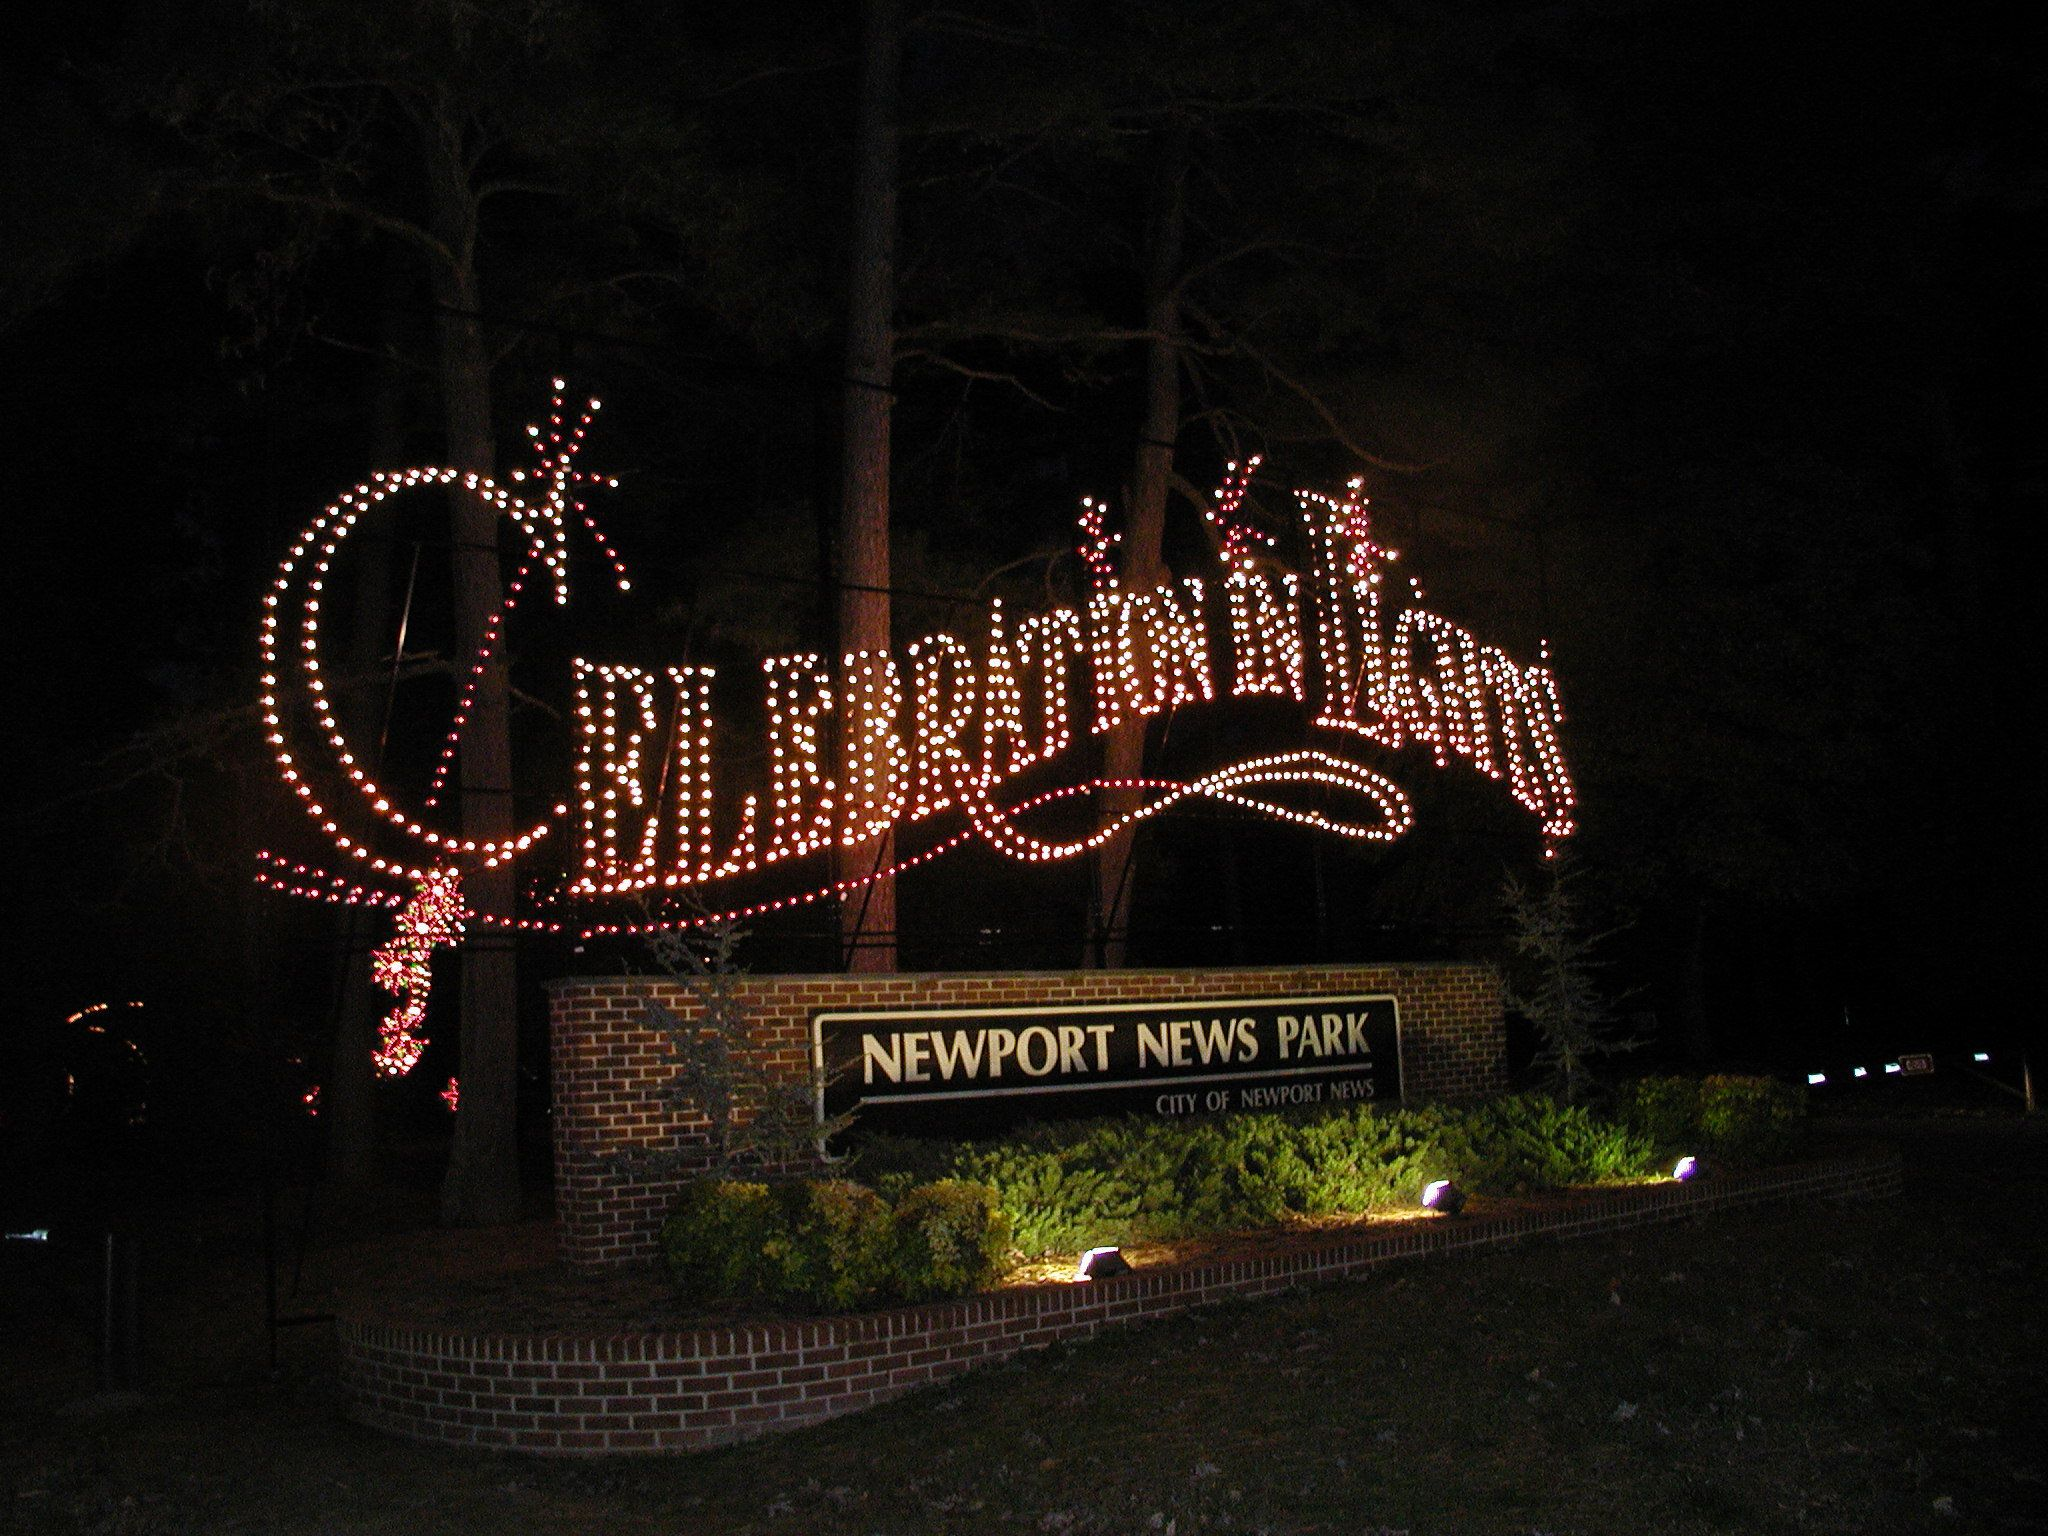 Celebration in Lights at Newport News Park, Virginia's